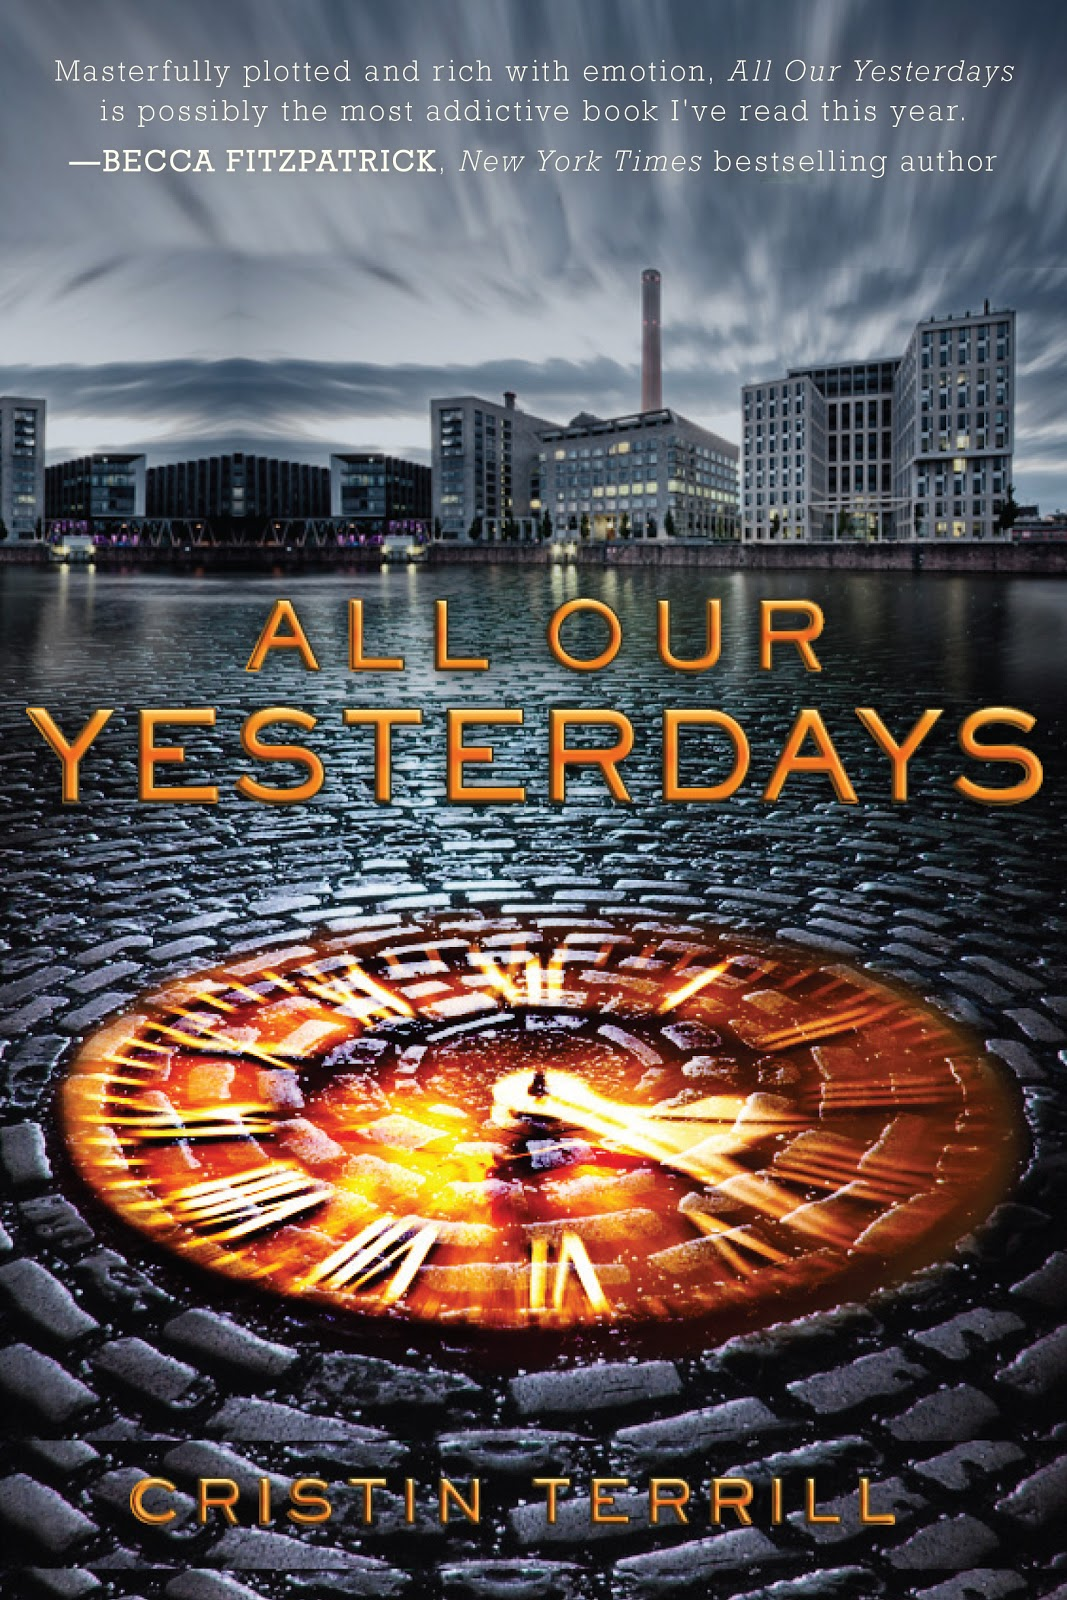 Sacrifice & Consequences in Cristin Terrill's All Our Yesterdays | Clear Eyes, Full Shelves | cleareyesfullshelves.com